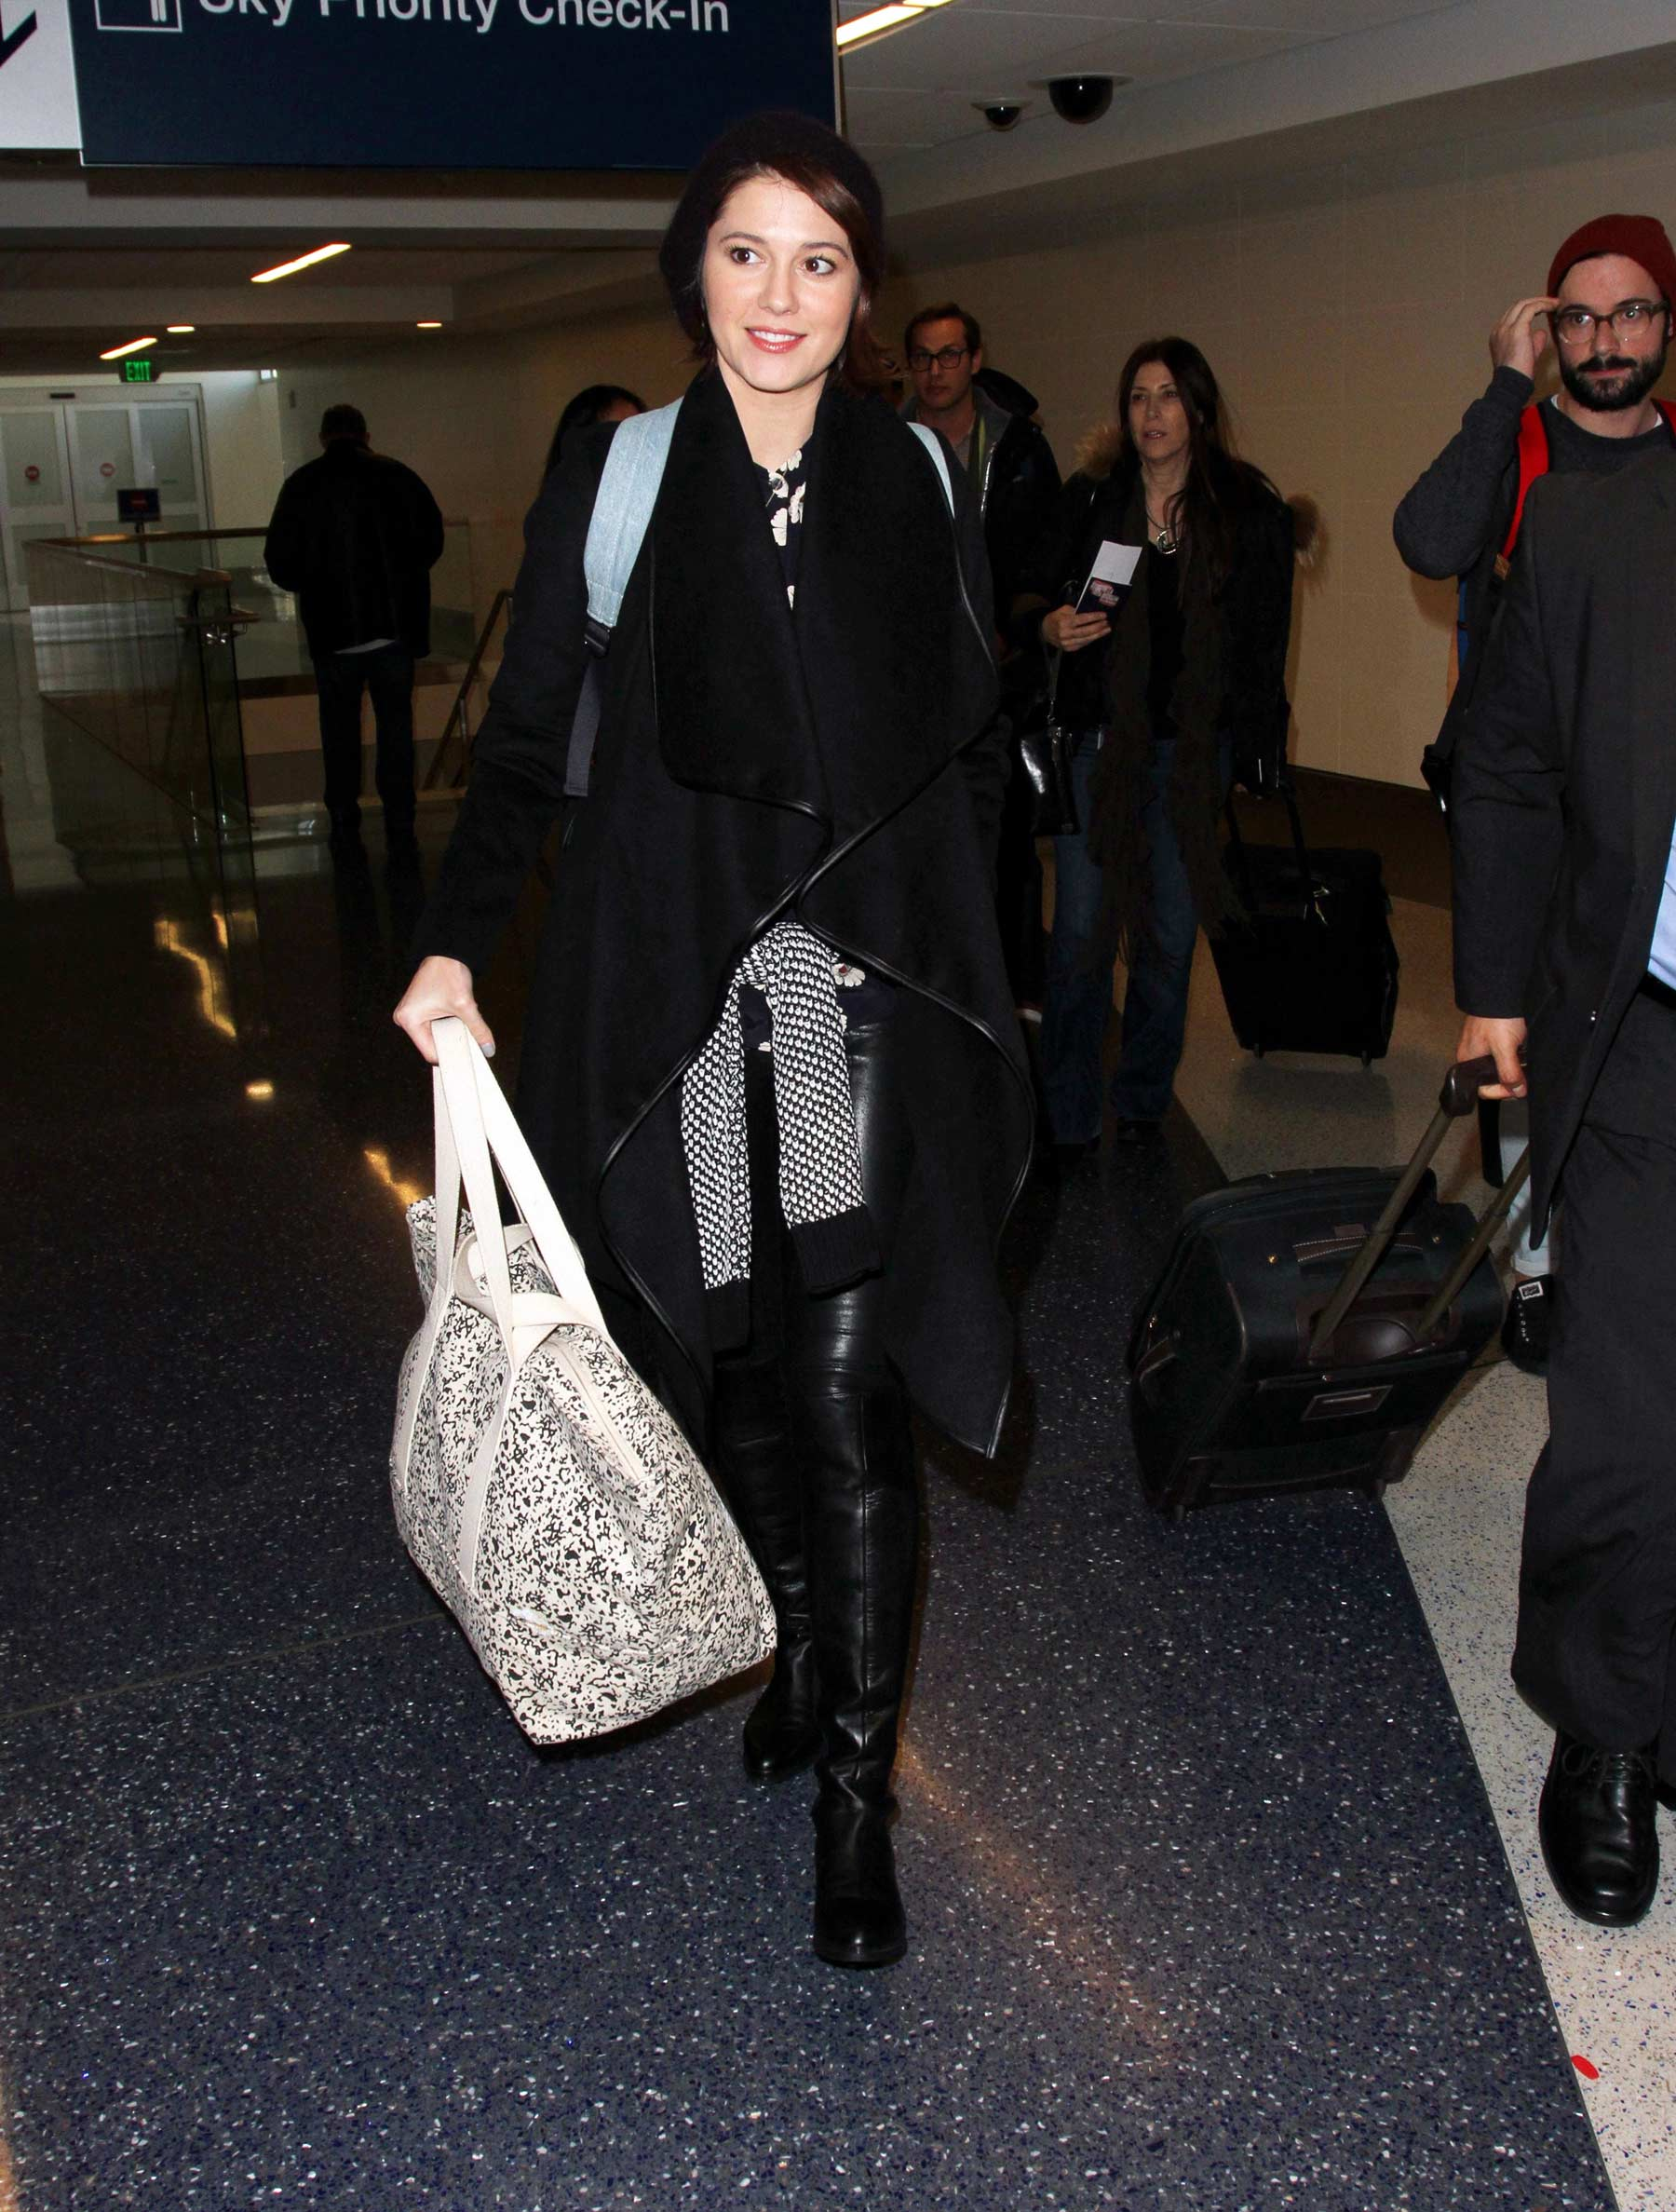 Mary Elizabeth Winstead arriving at the ariport